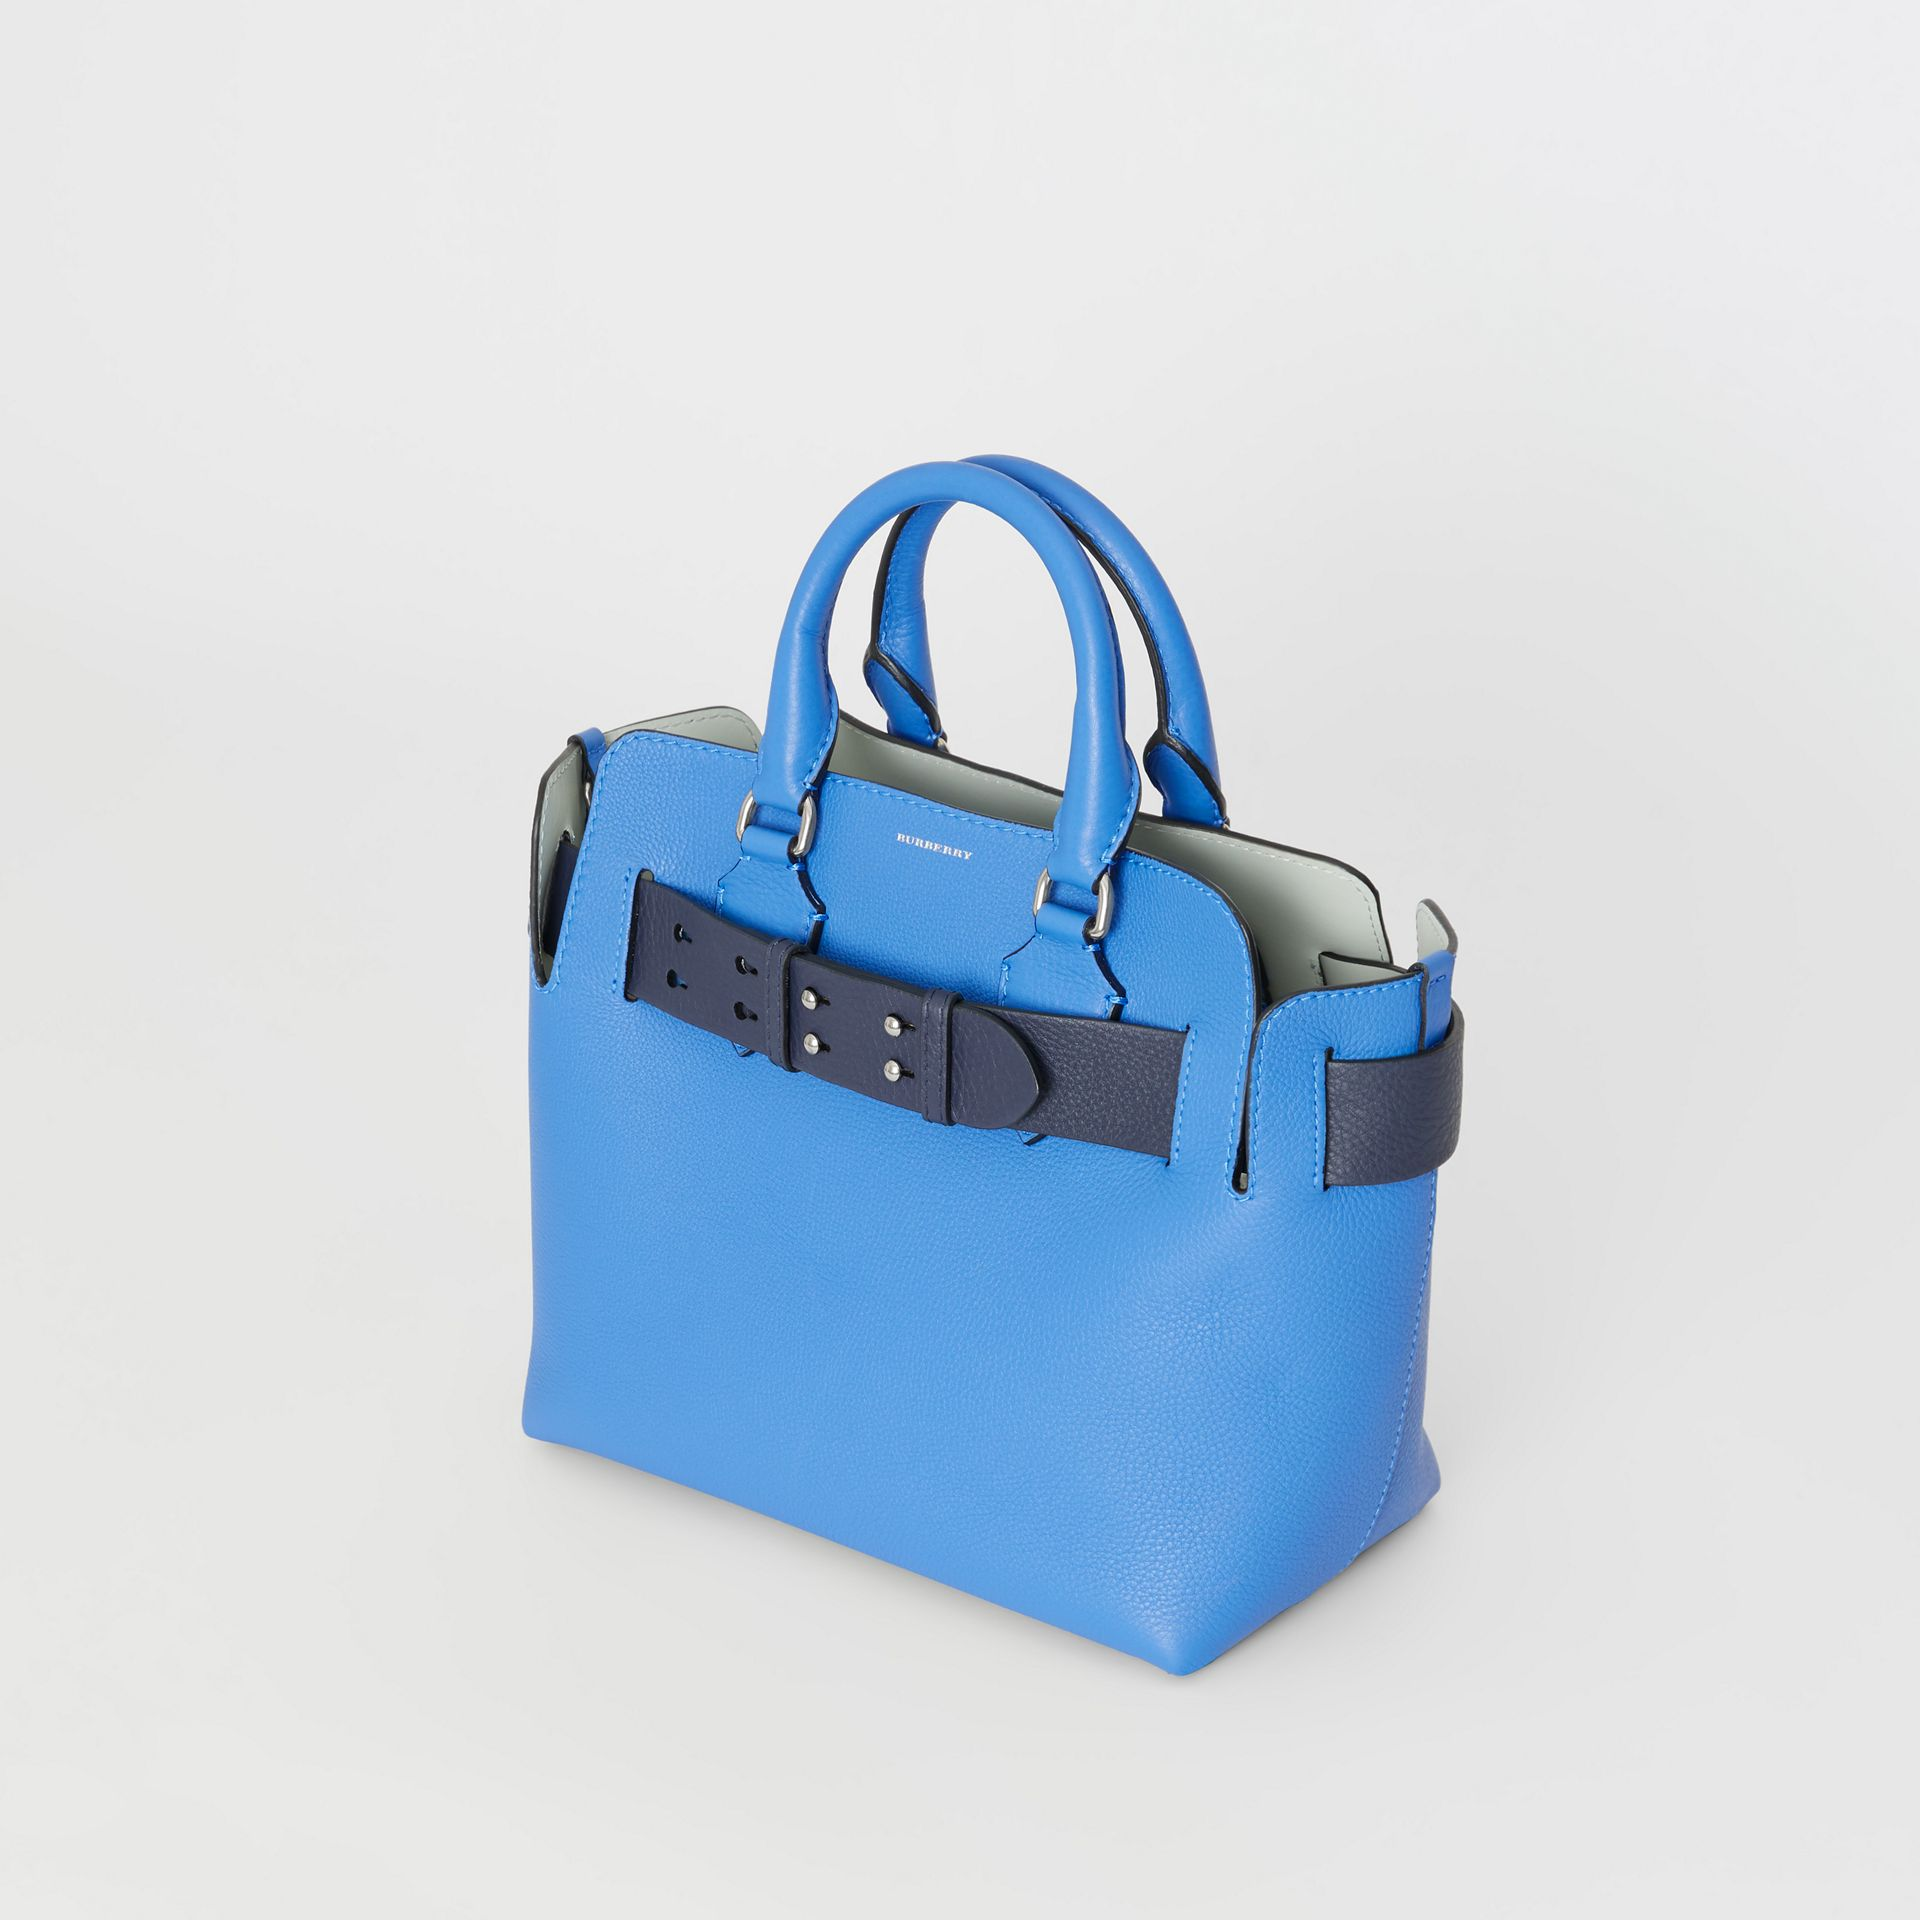 Borsa The Belt piccola in pelle (Blu Ortensia) - Donna | Burberry - immagine della galleria 3